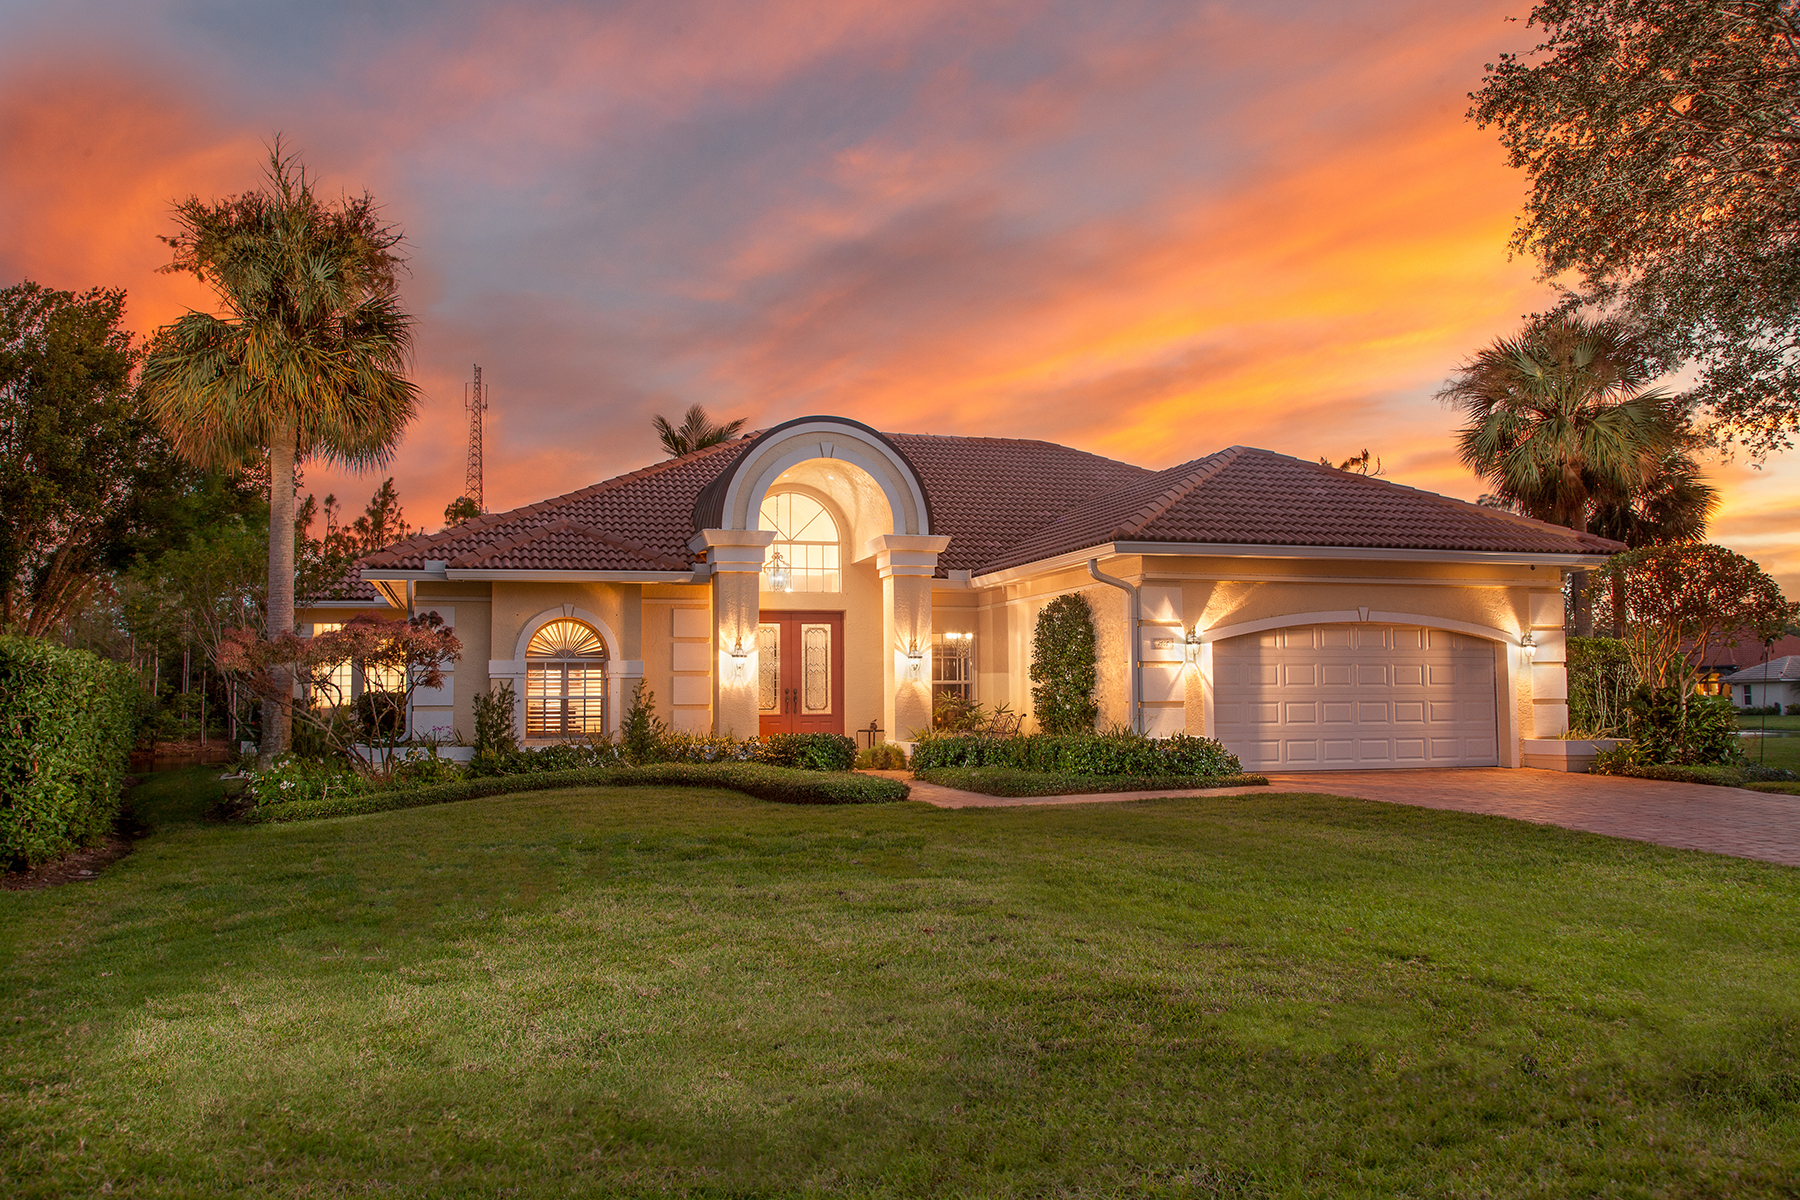 Single Family Home for Sale at CROSSINGS - MILL RUN 1908 Manchester Cir, Naples, Florida 34109 United States